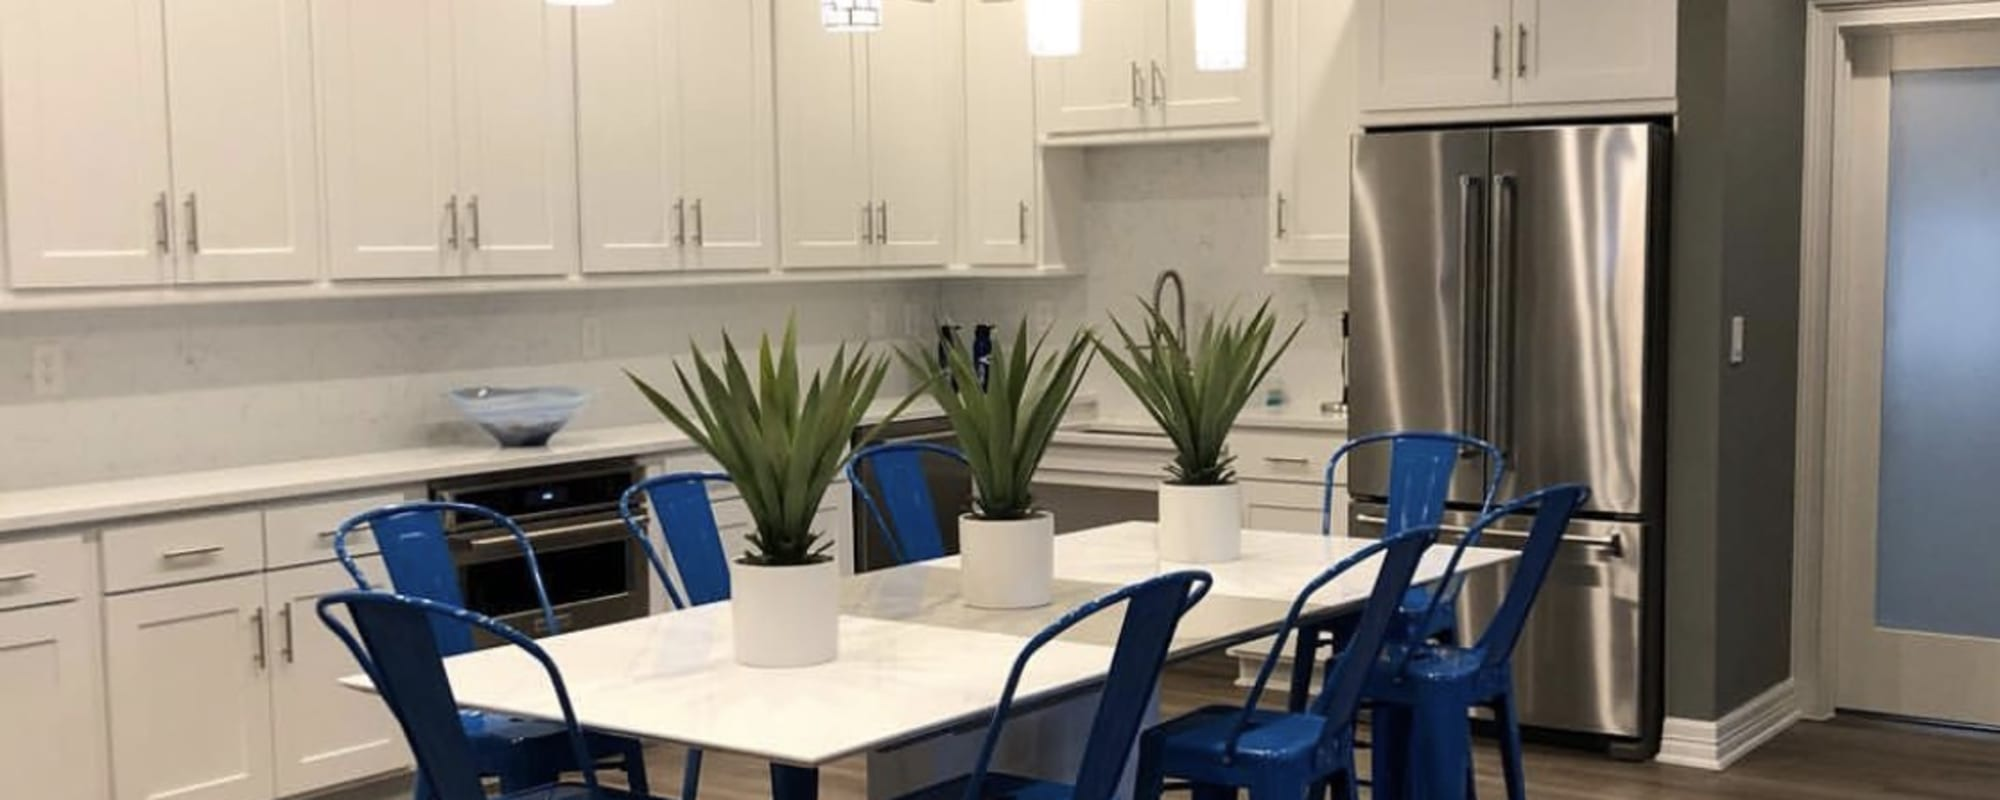 Community resident kitchen at The View at Encino Commons in San Antonio, Texas